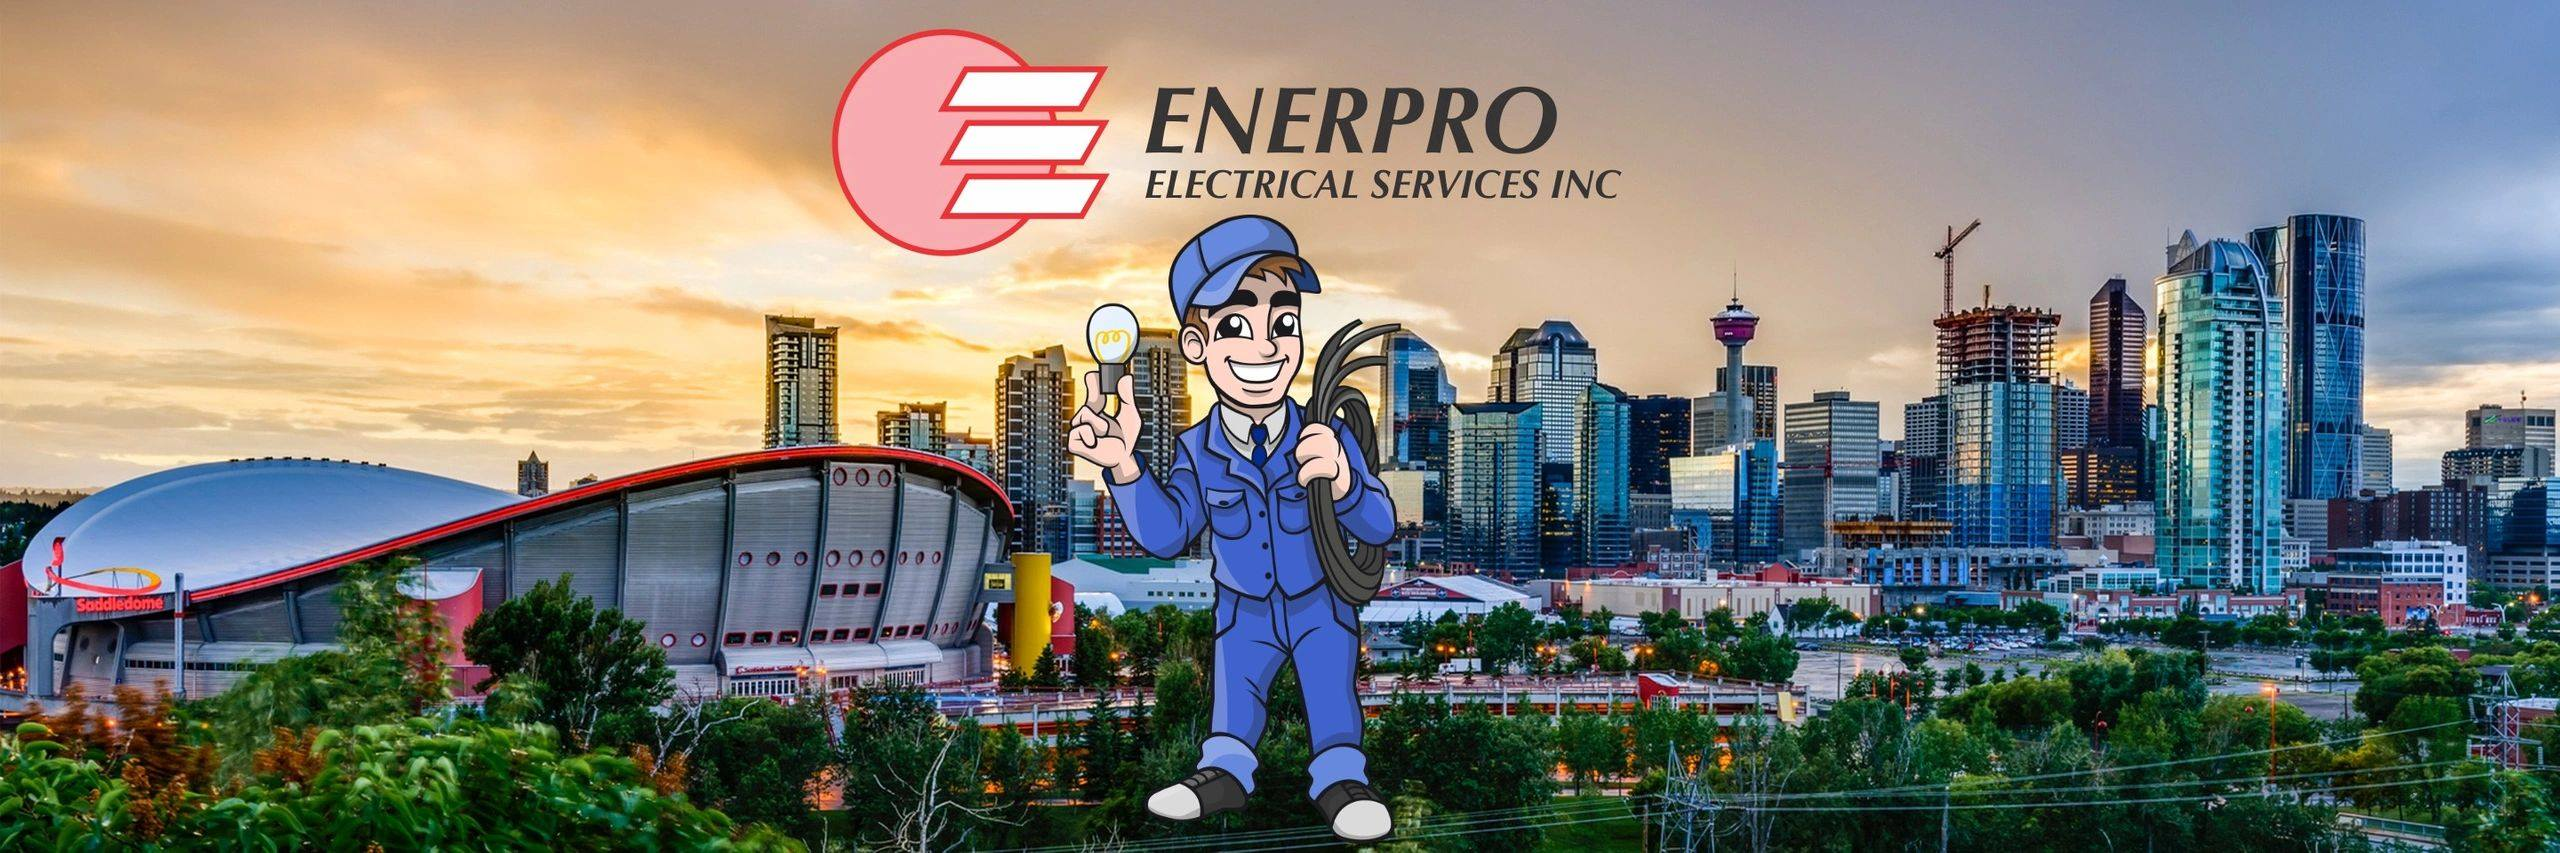 Enerpro Electrical Services